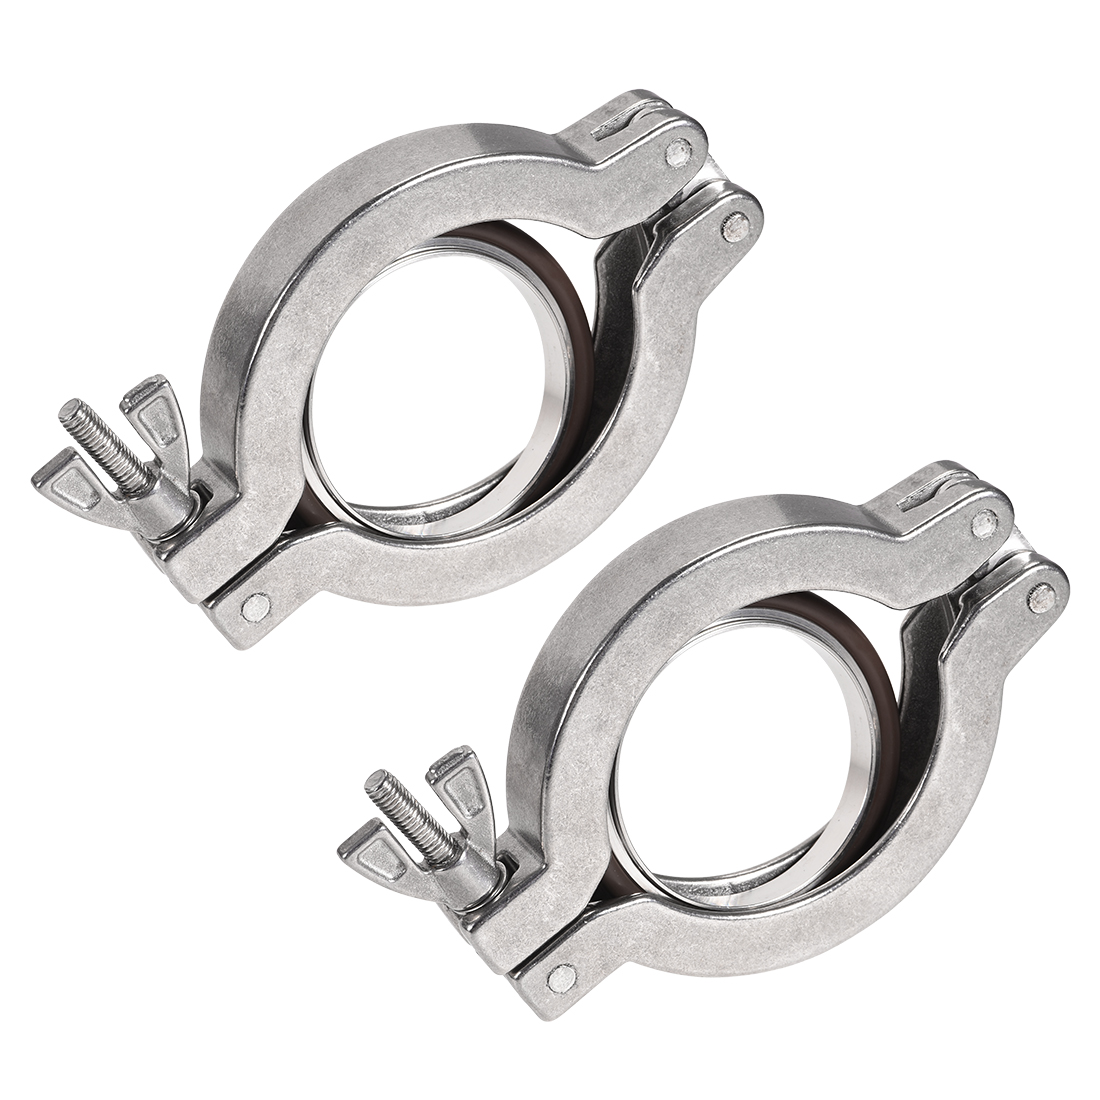 Sanitary -Clamp 90mm x 57mm KF50 Clamp Wing Nut with Center Ring 2 Pcs